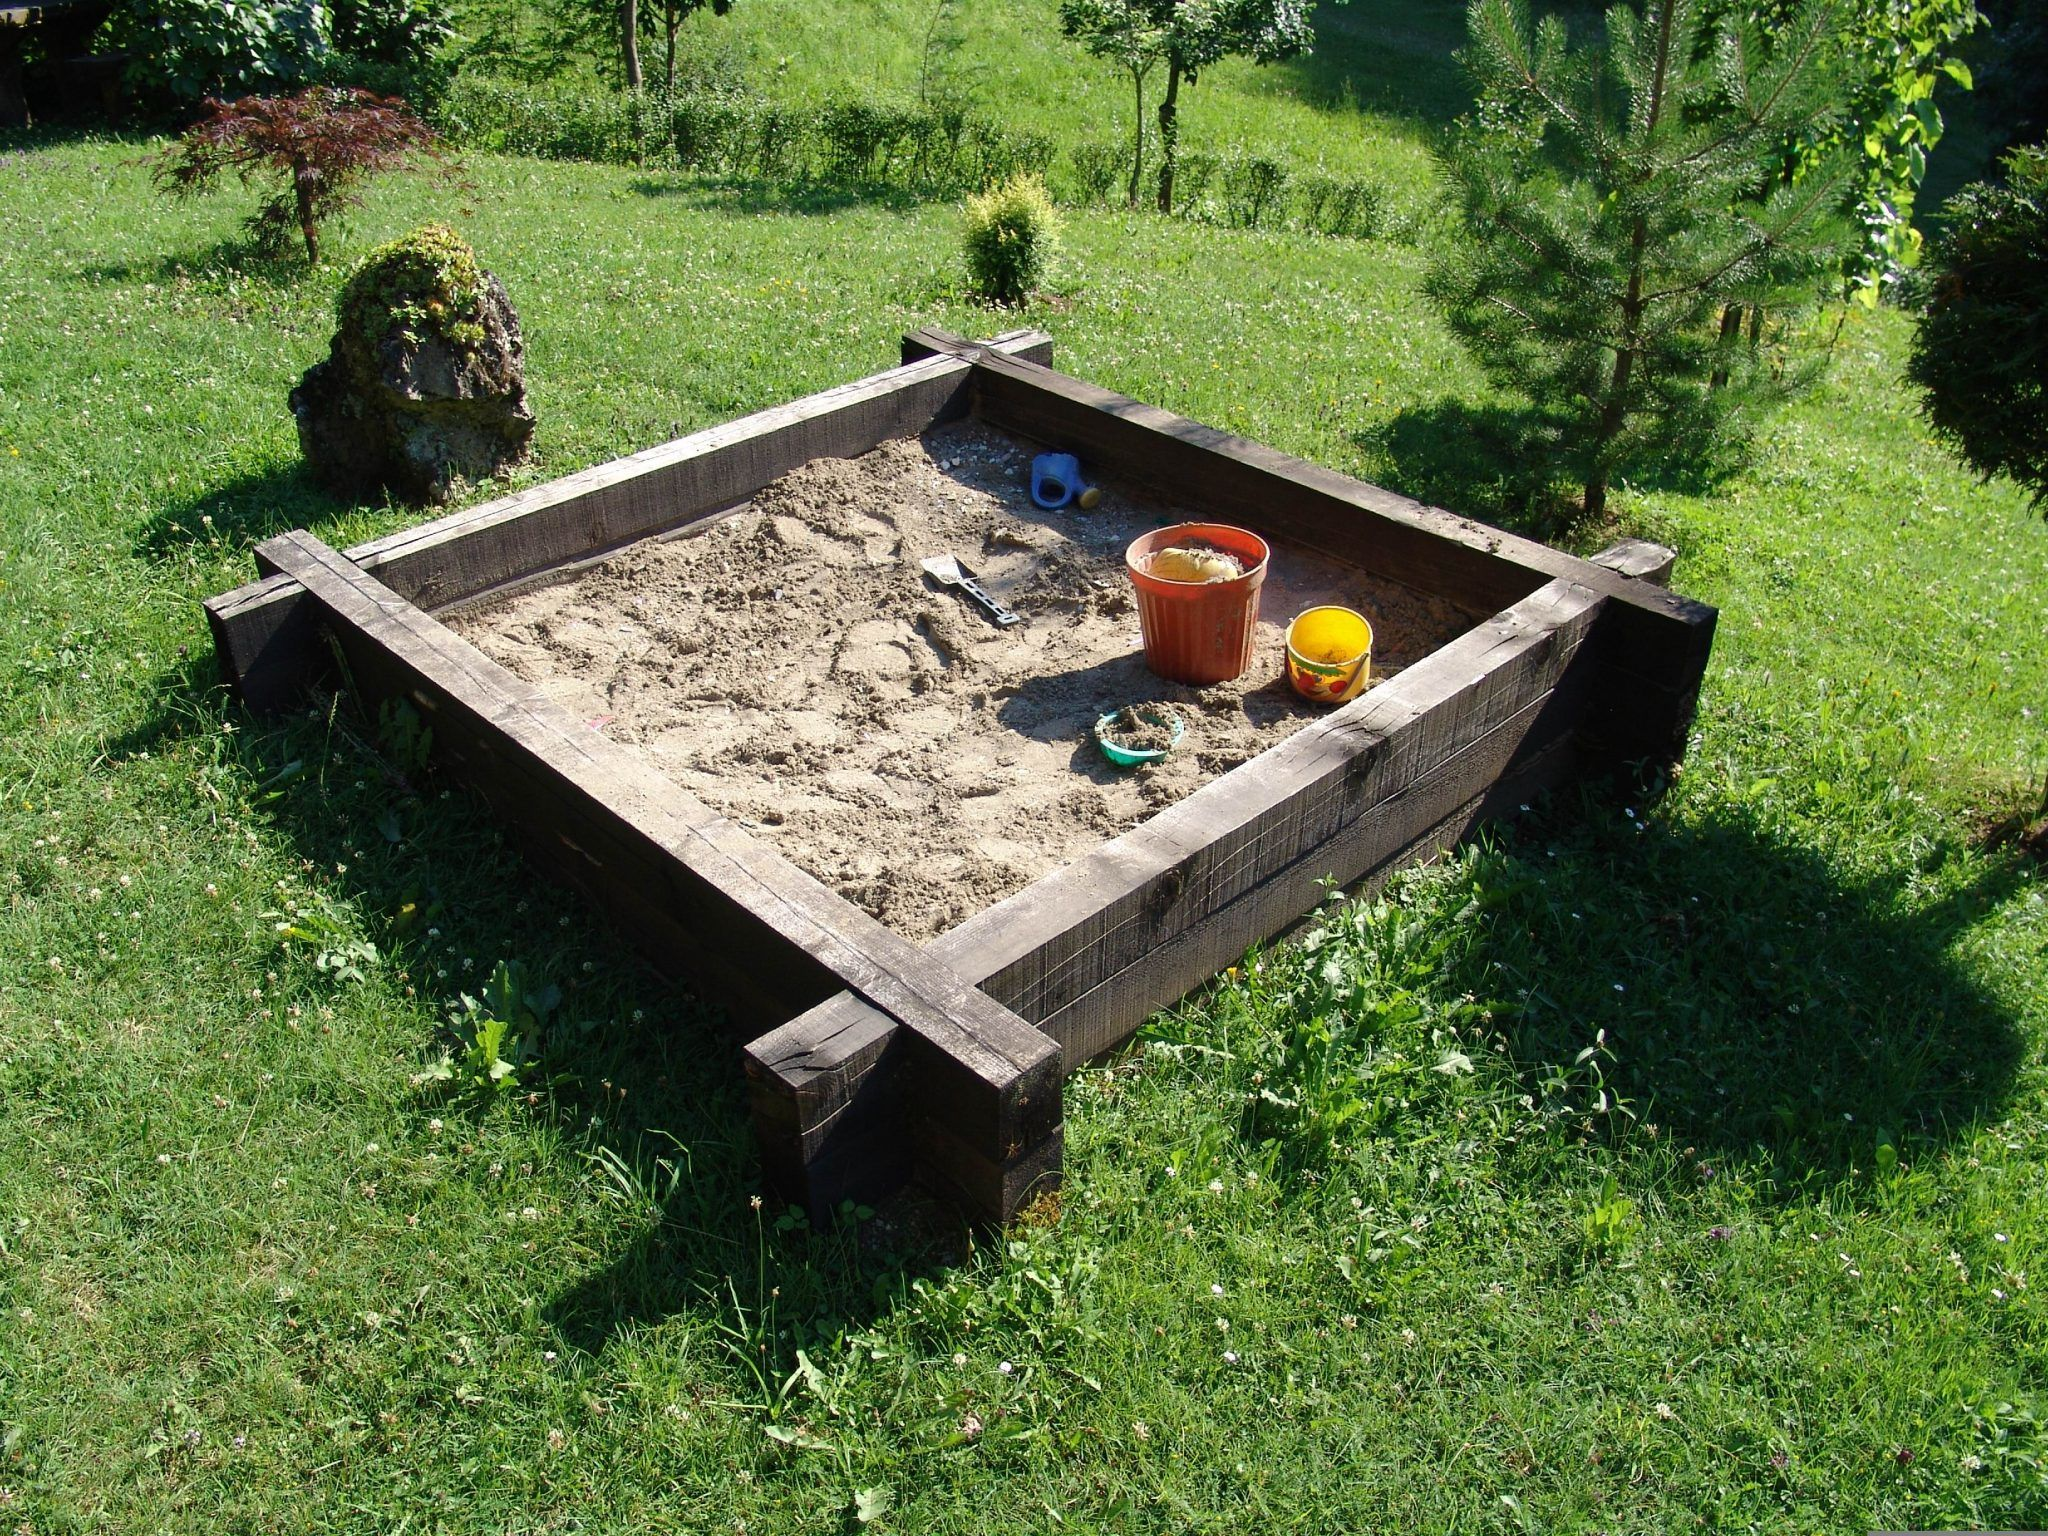 Kid Friendly Backyard Ideas-give your kids a sandbox-sandbox in the garden